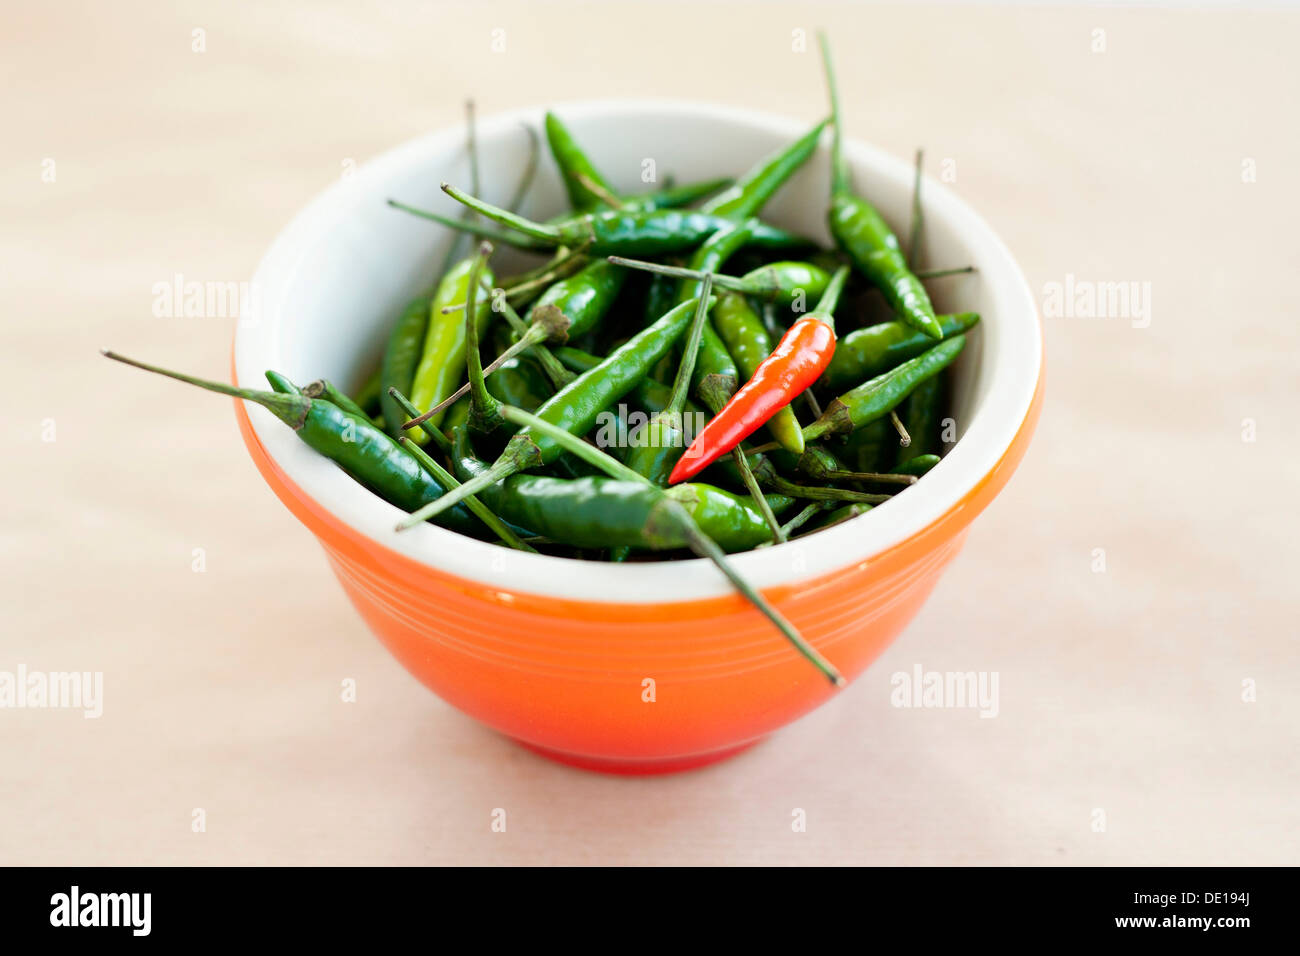 Bol de piment oiseau, piments vert et rouge, l'Orange Bowl. Fond neutre. Photo Stock